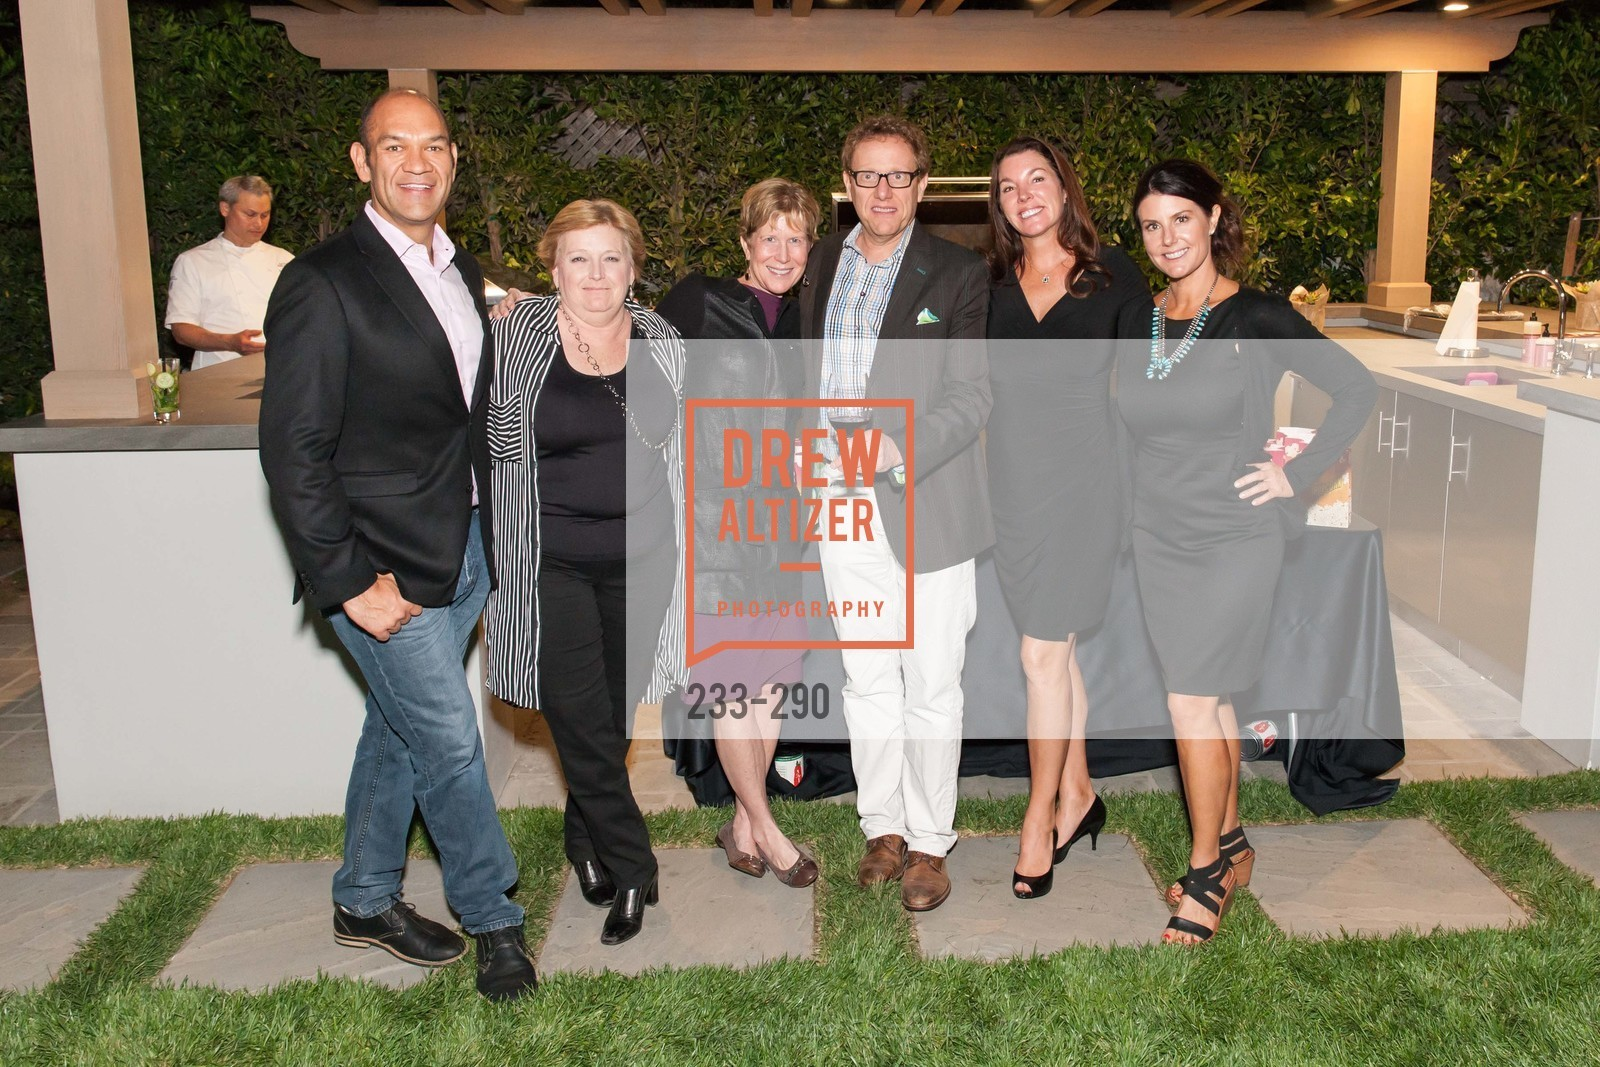 Patrick Davila, Carrie Markham, Brenda Lhormer, Marc Lhormer, Michelle Baggett, Carissa Ashman, Napa Valley Film Festival: Silicon Valley First Look, Private home. 1030 Hamilton Ave, September 16th, 2015,Drew Altizer, Drew Altizer Photography, full-service agency, private events, San Francisco photographer, photographer california